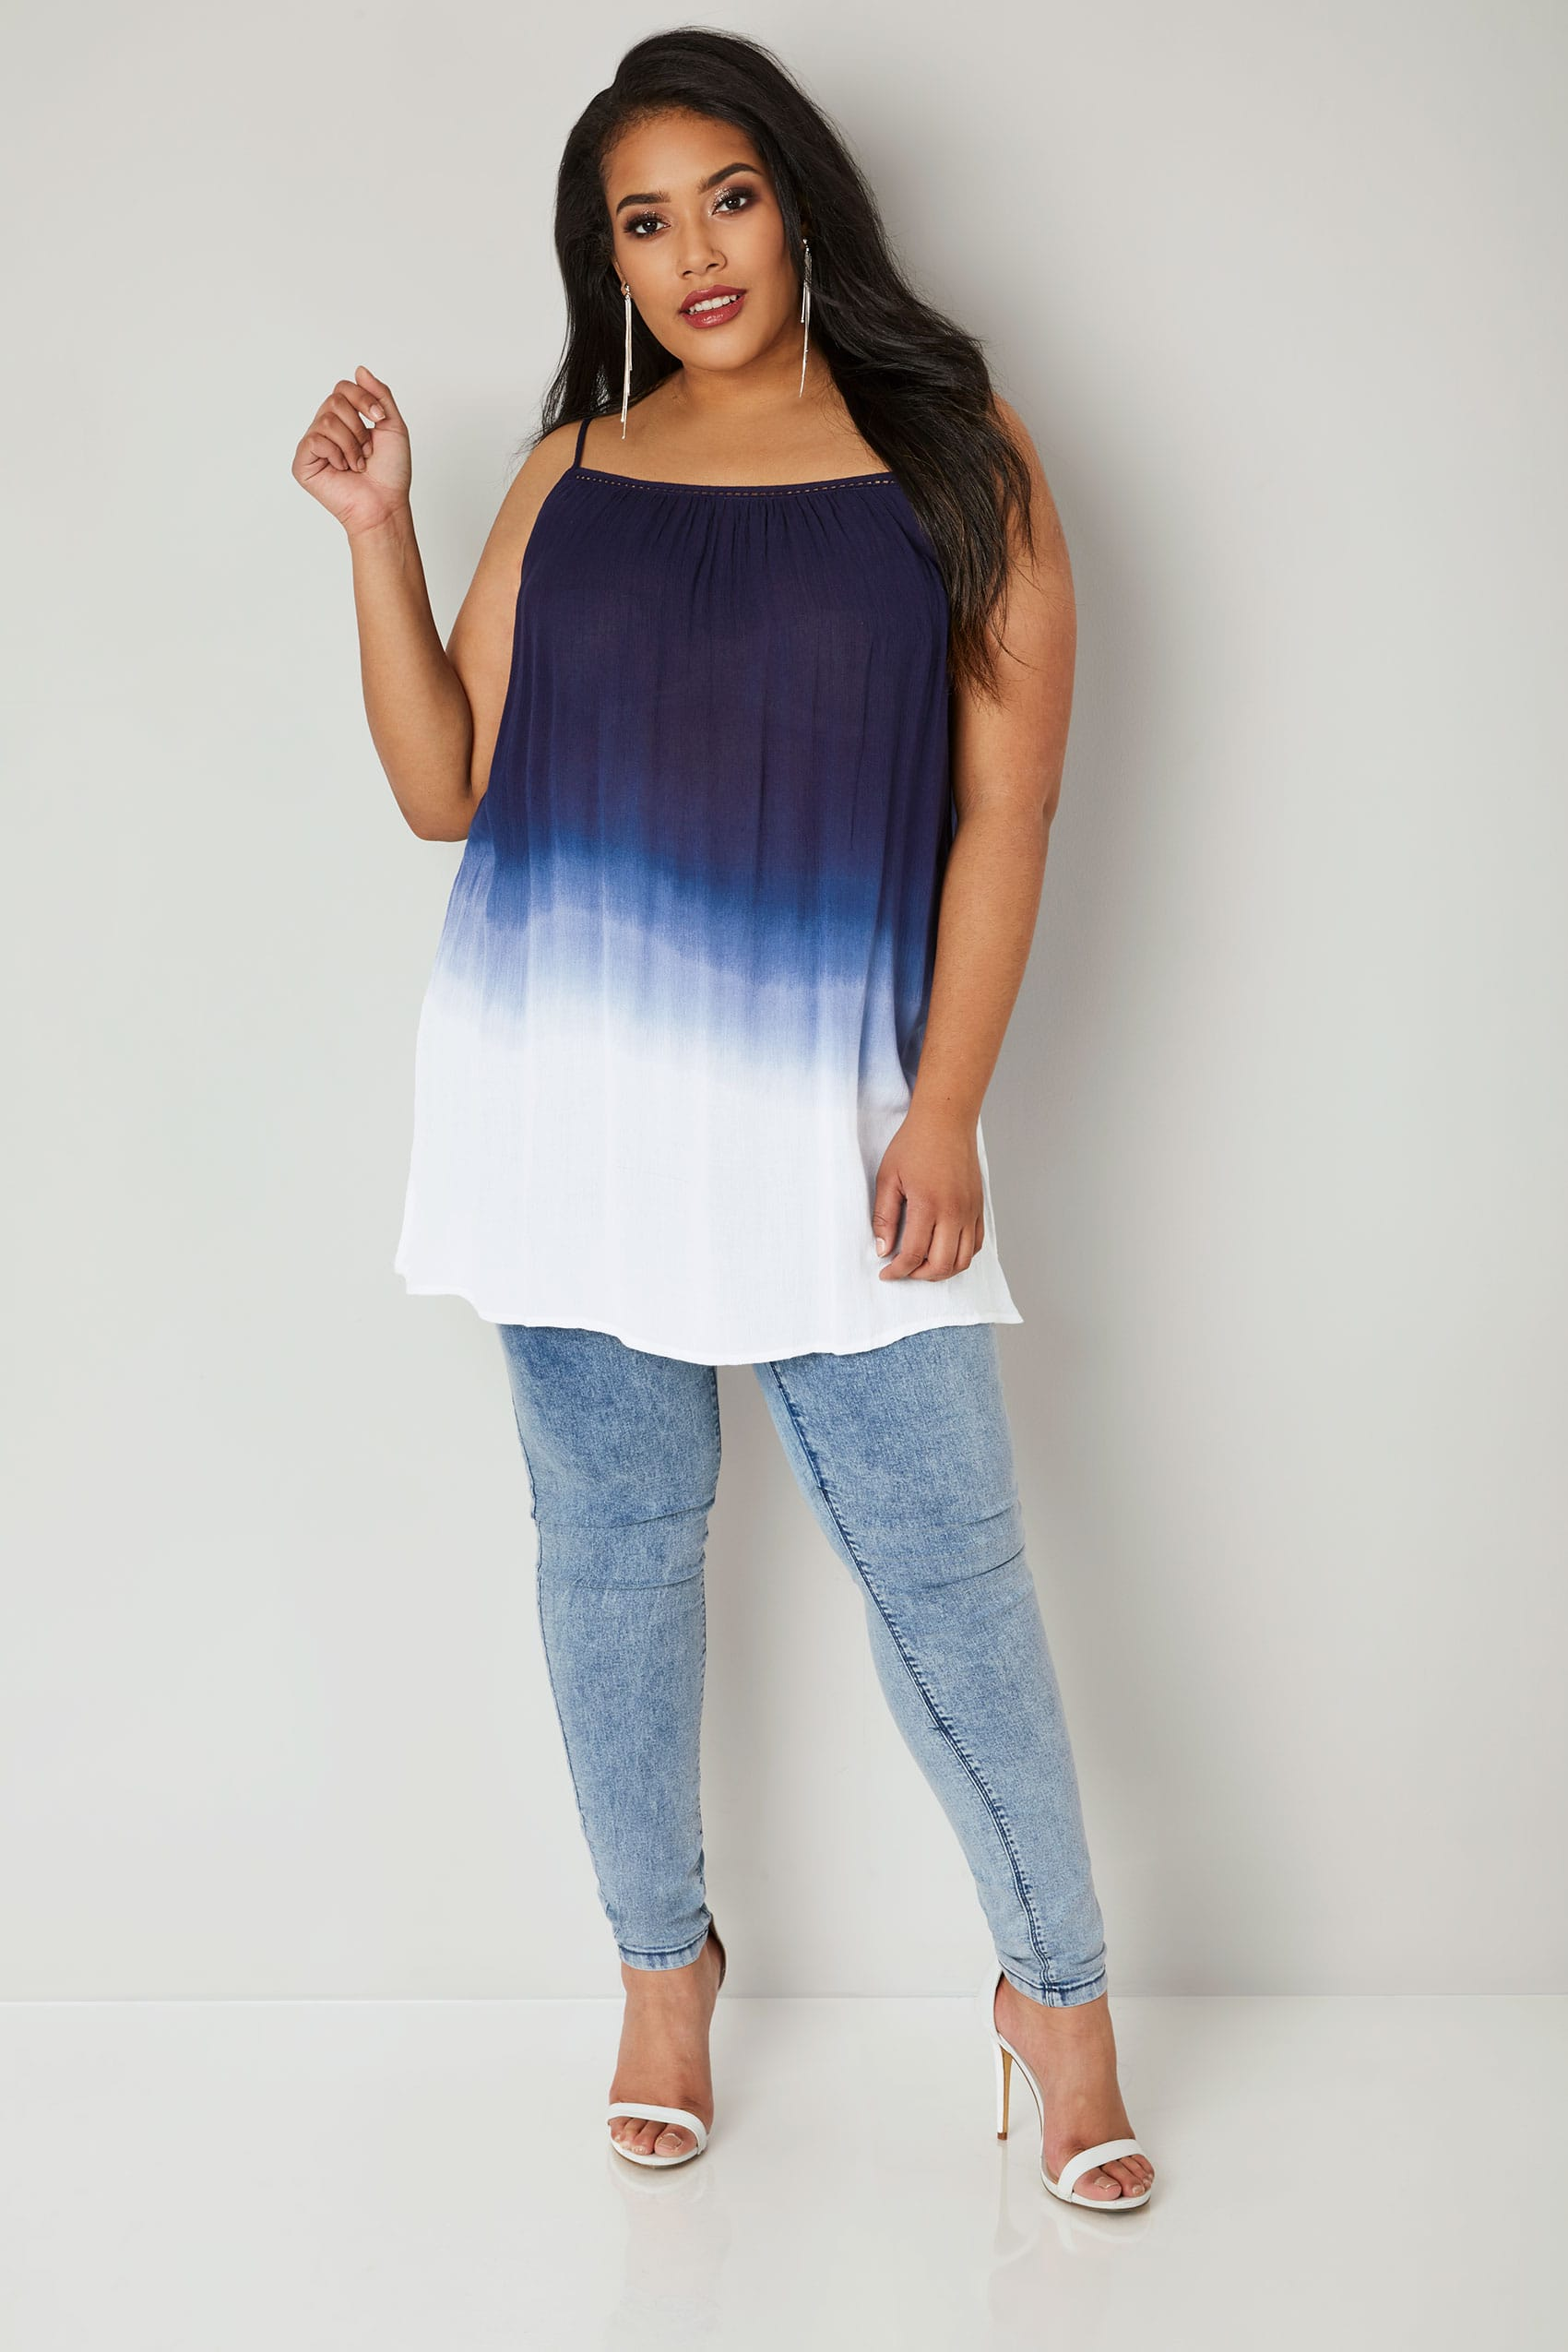 Navy Ombre Longline Swing Top, plus size 16 to 36